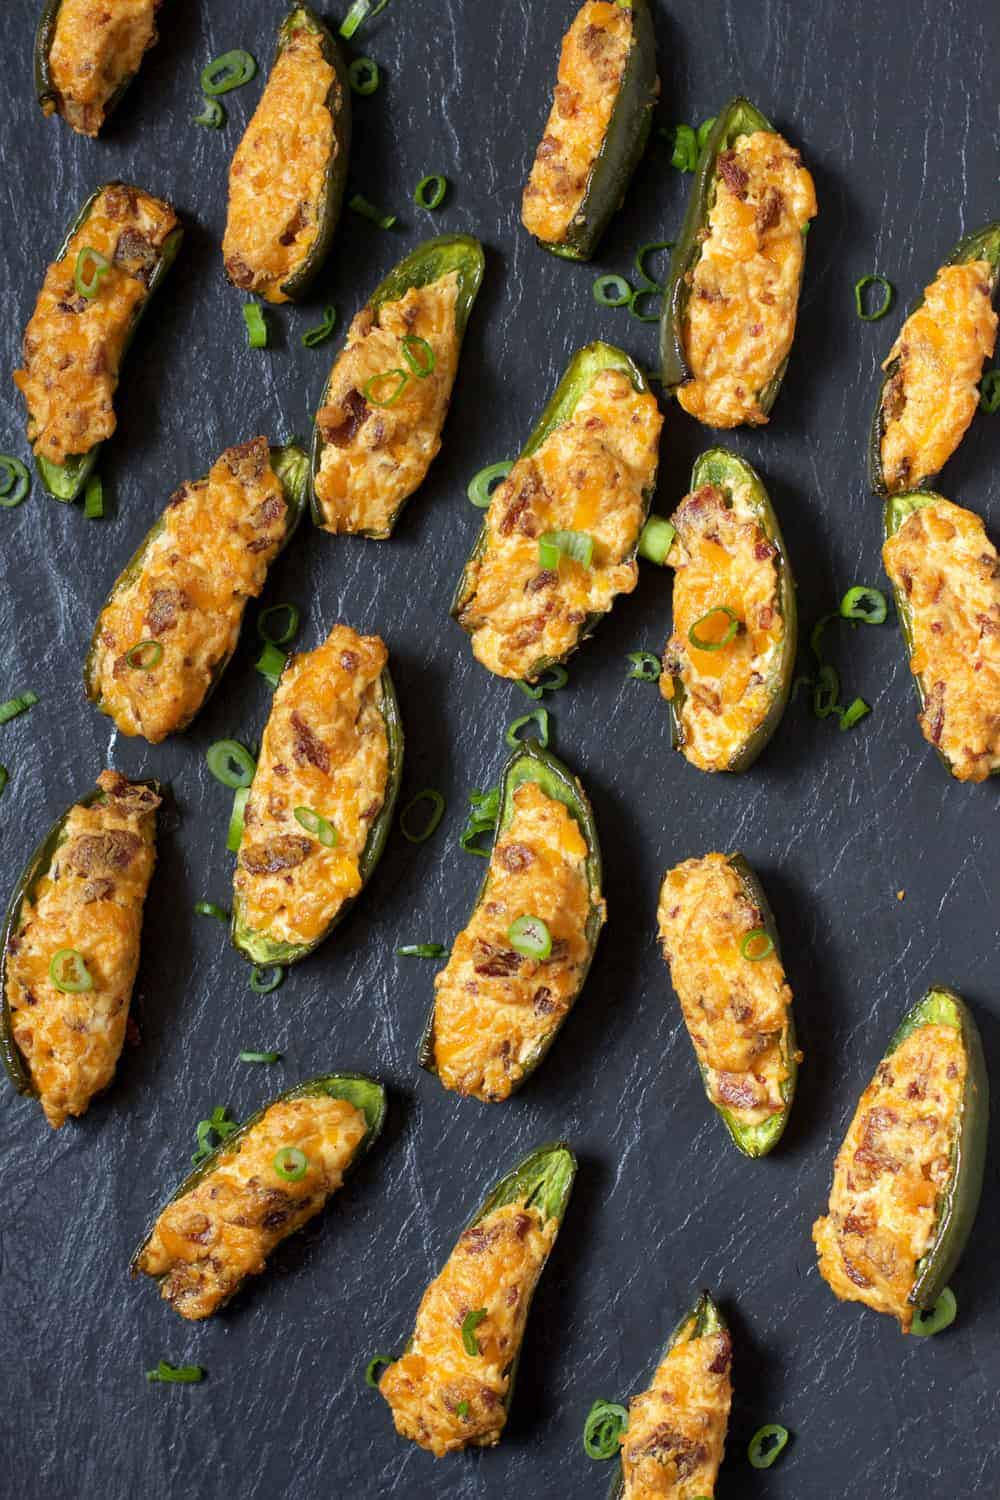 Smoked Jalapeno Poppers on a black slate board